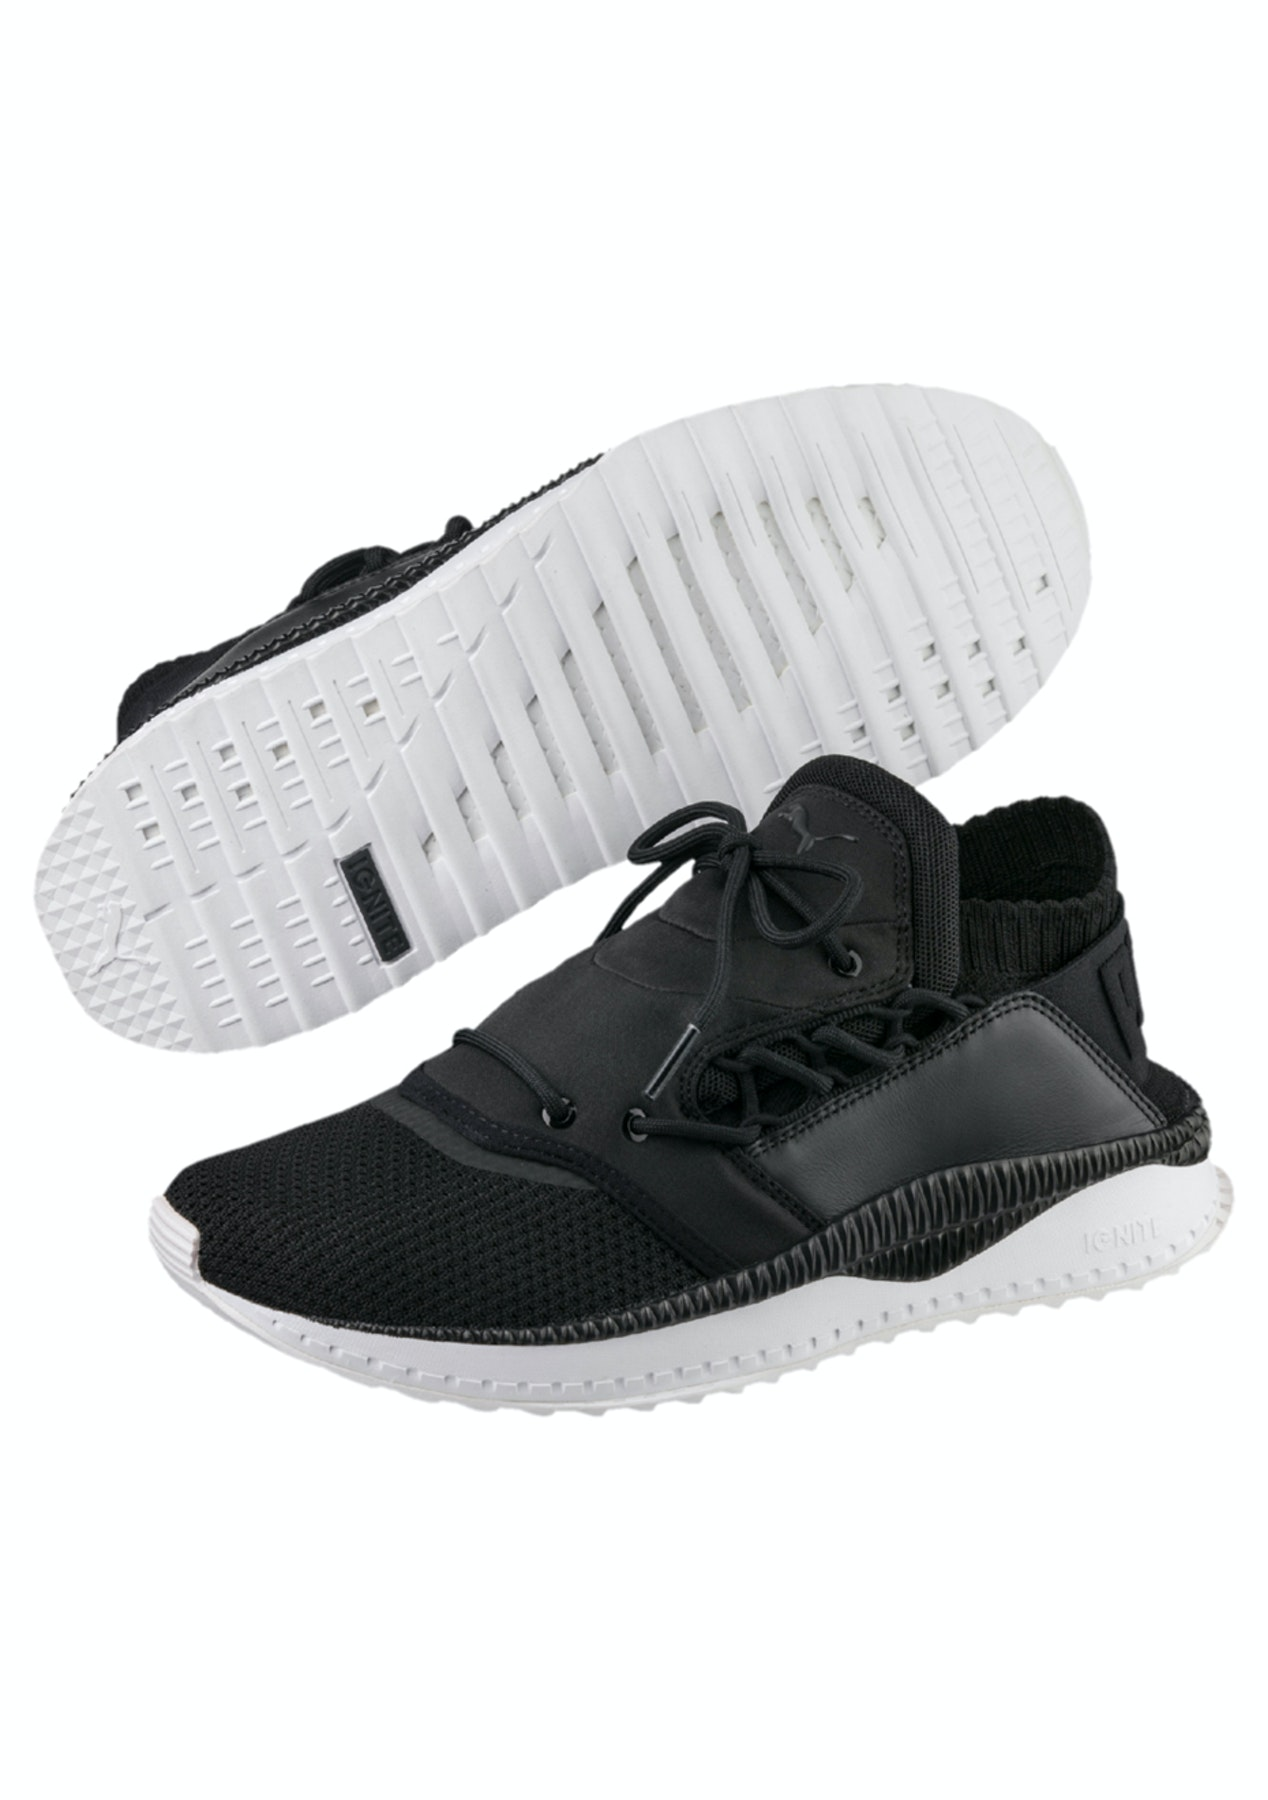 Puma Mens - Tsugi Shinsei Training Shoes Black - Boxing Day Mens Clearance  - Onceit 9c7a19dff